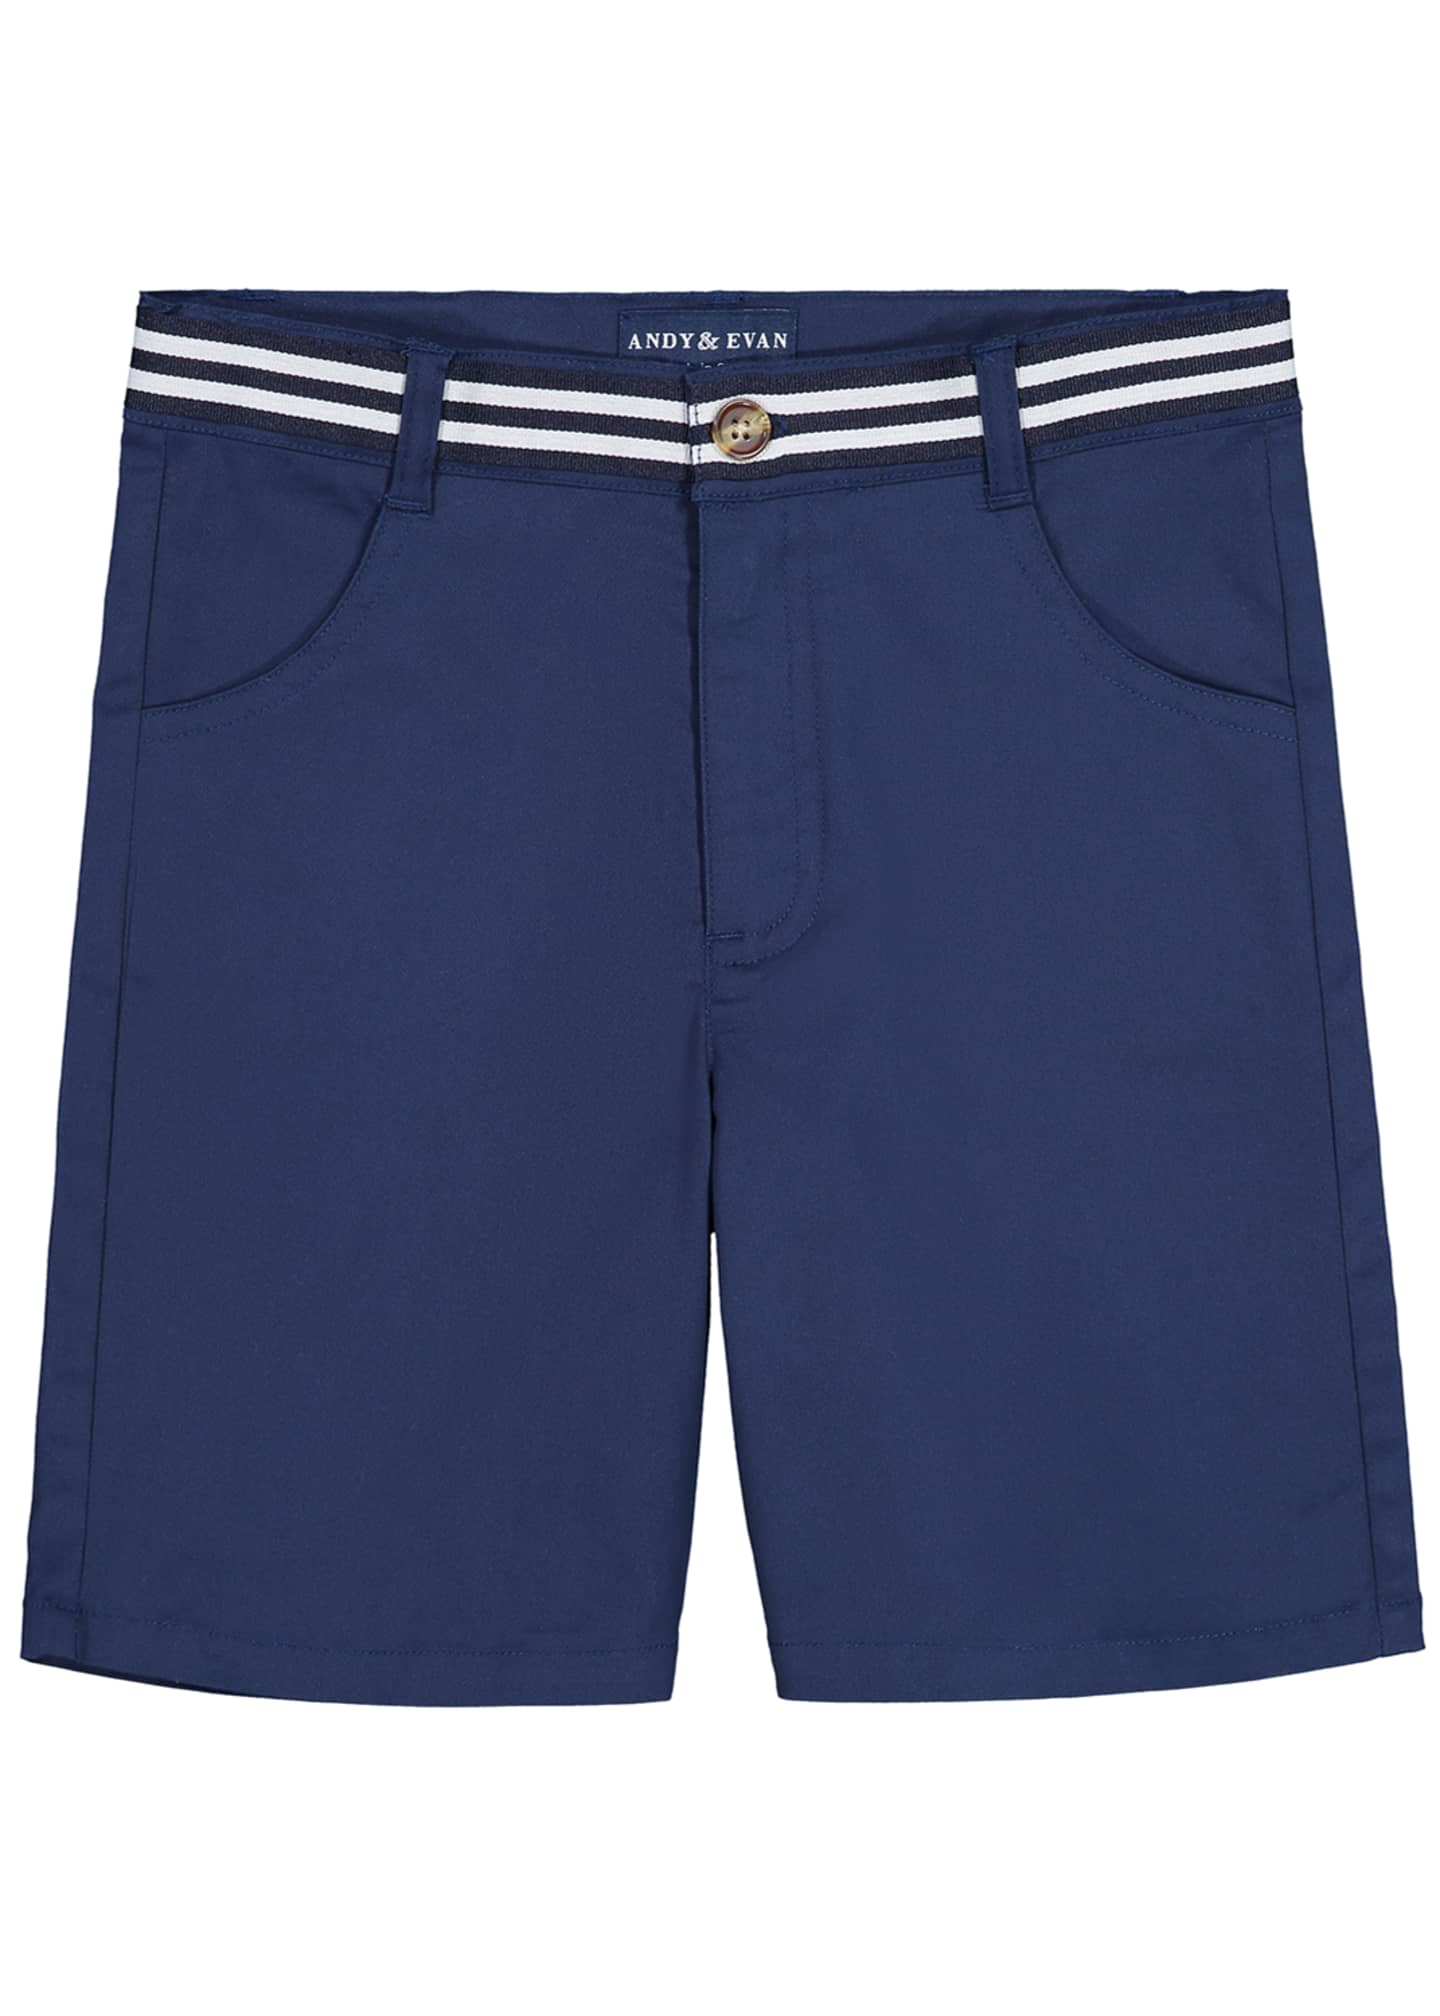 Andy & Evan Mock Belted Twill Shorts, Size